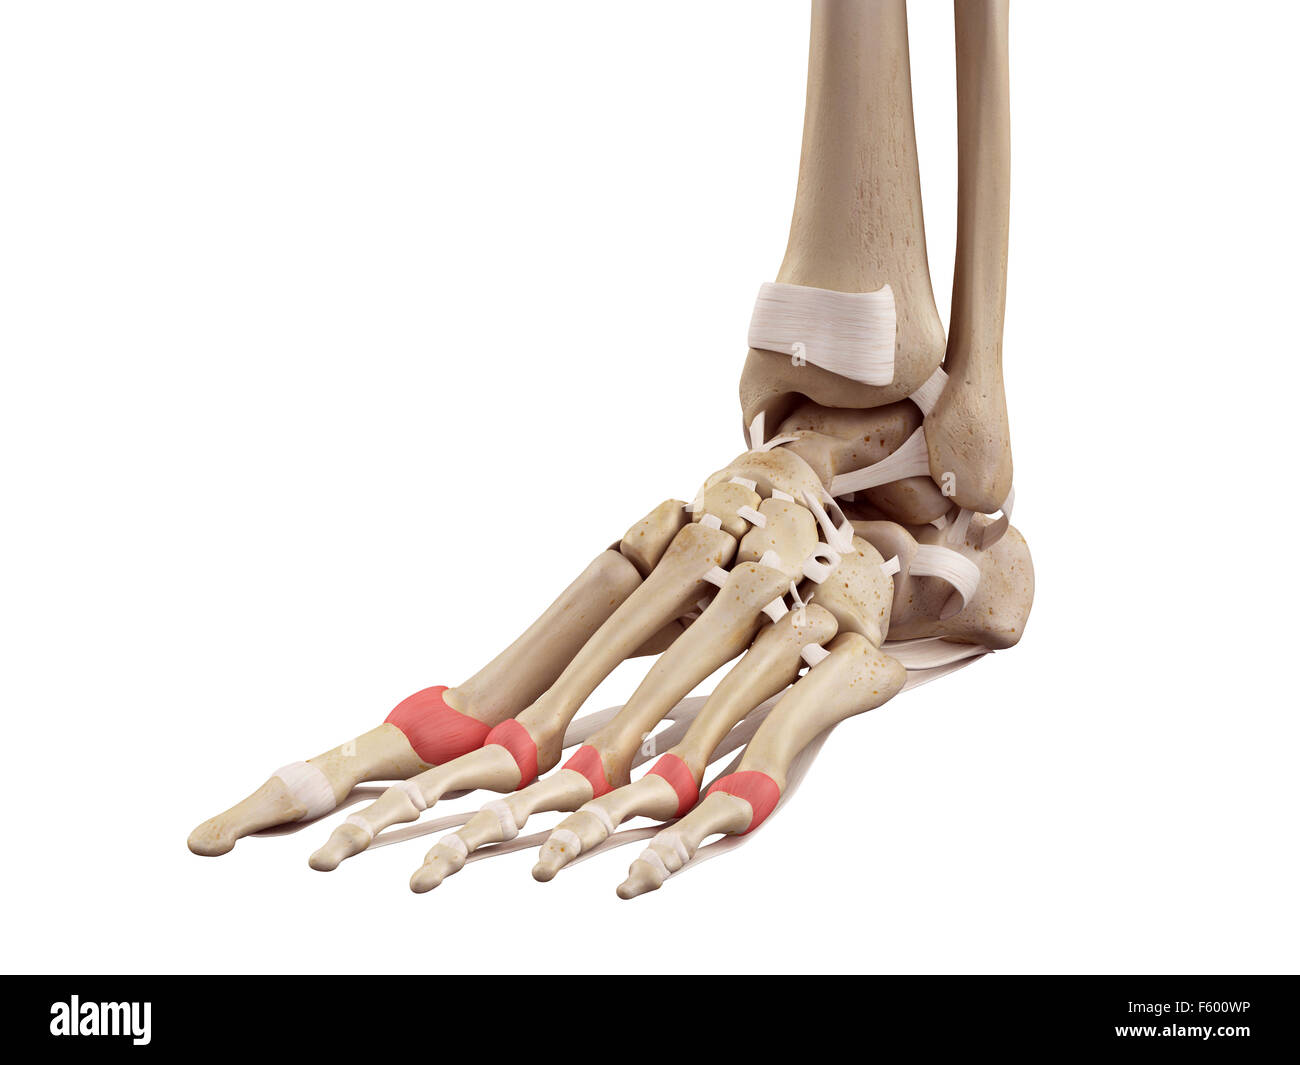 medical accurate illustration of the proximal joint capsules - Stock Image